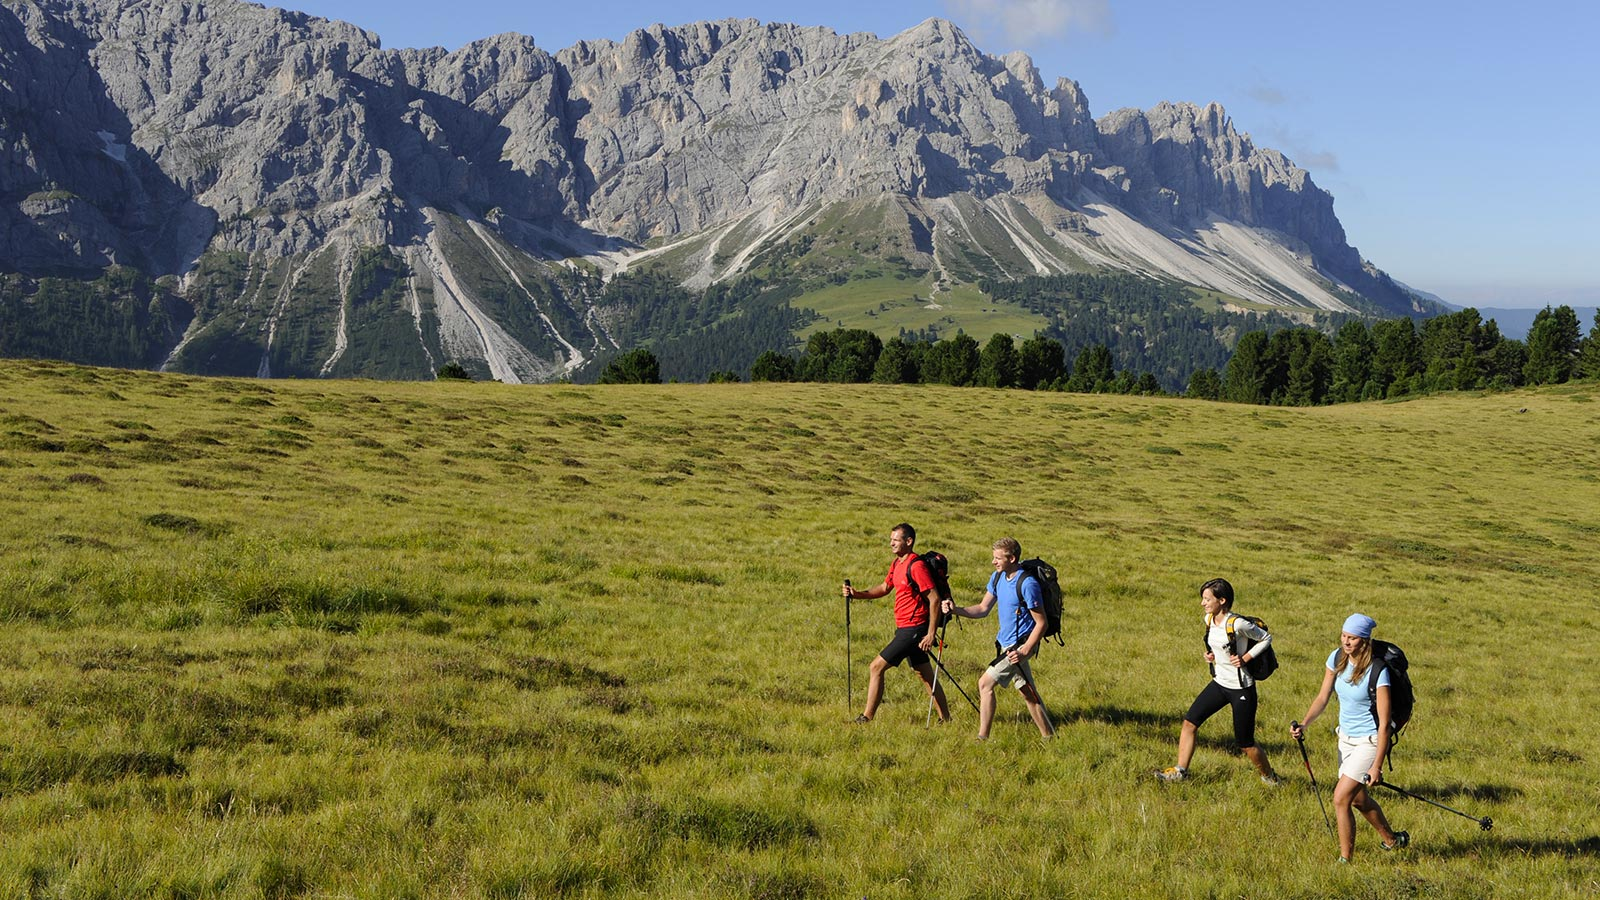 Group of four hikers on the green meadows of Plan de Corones with the Dolomites in the background